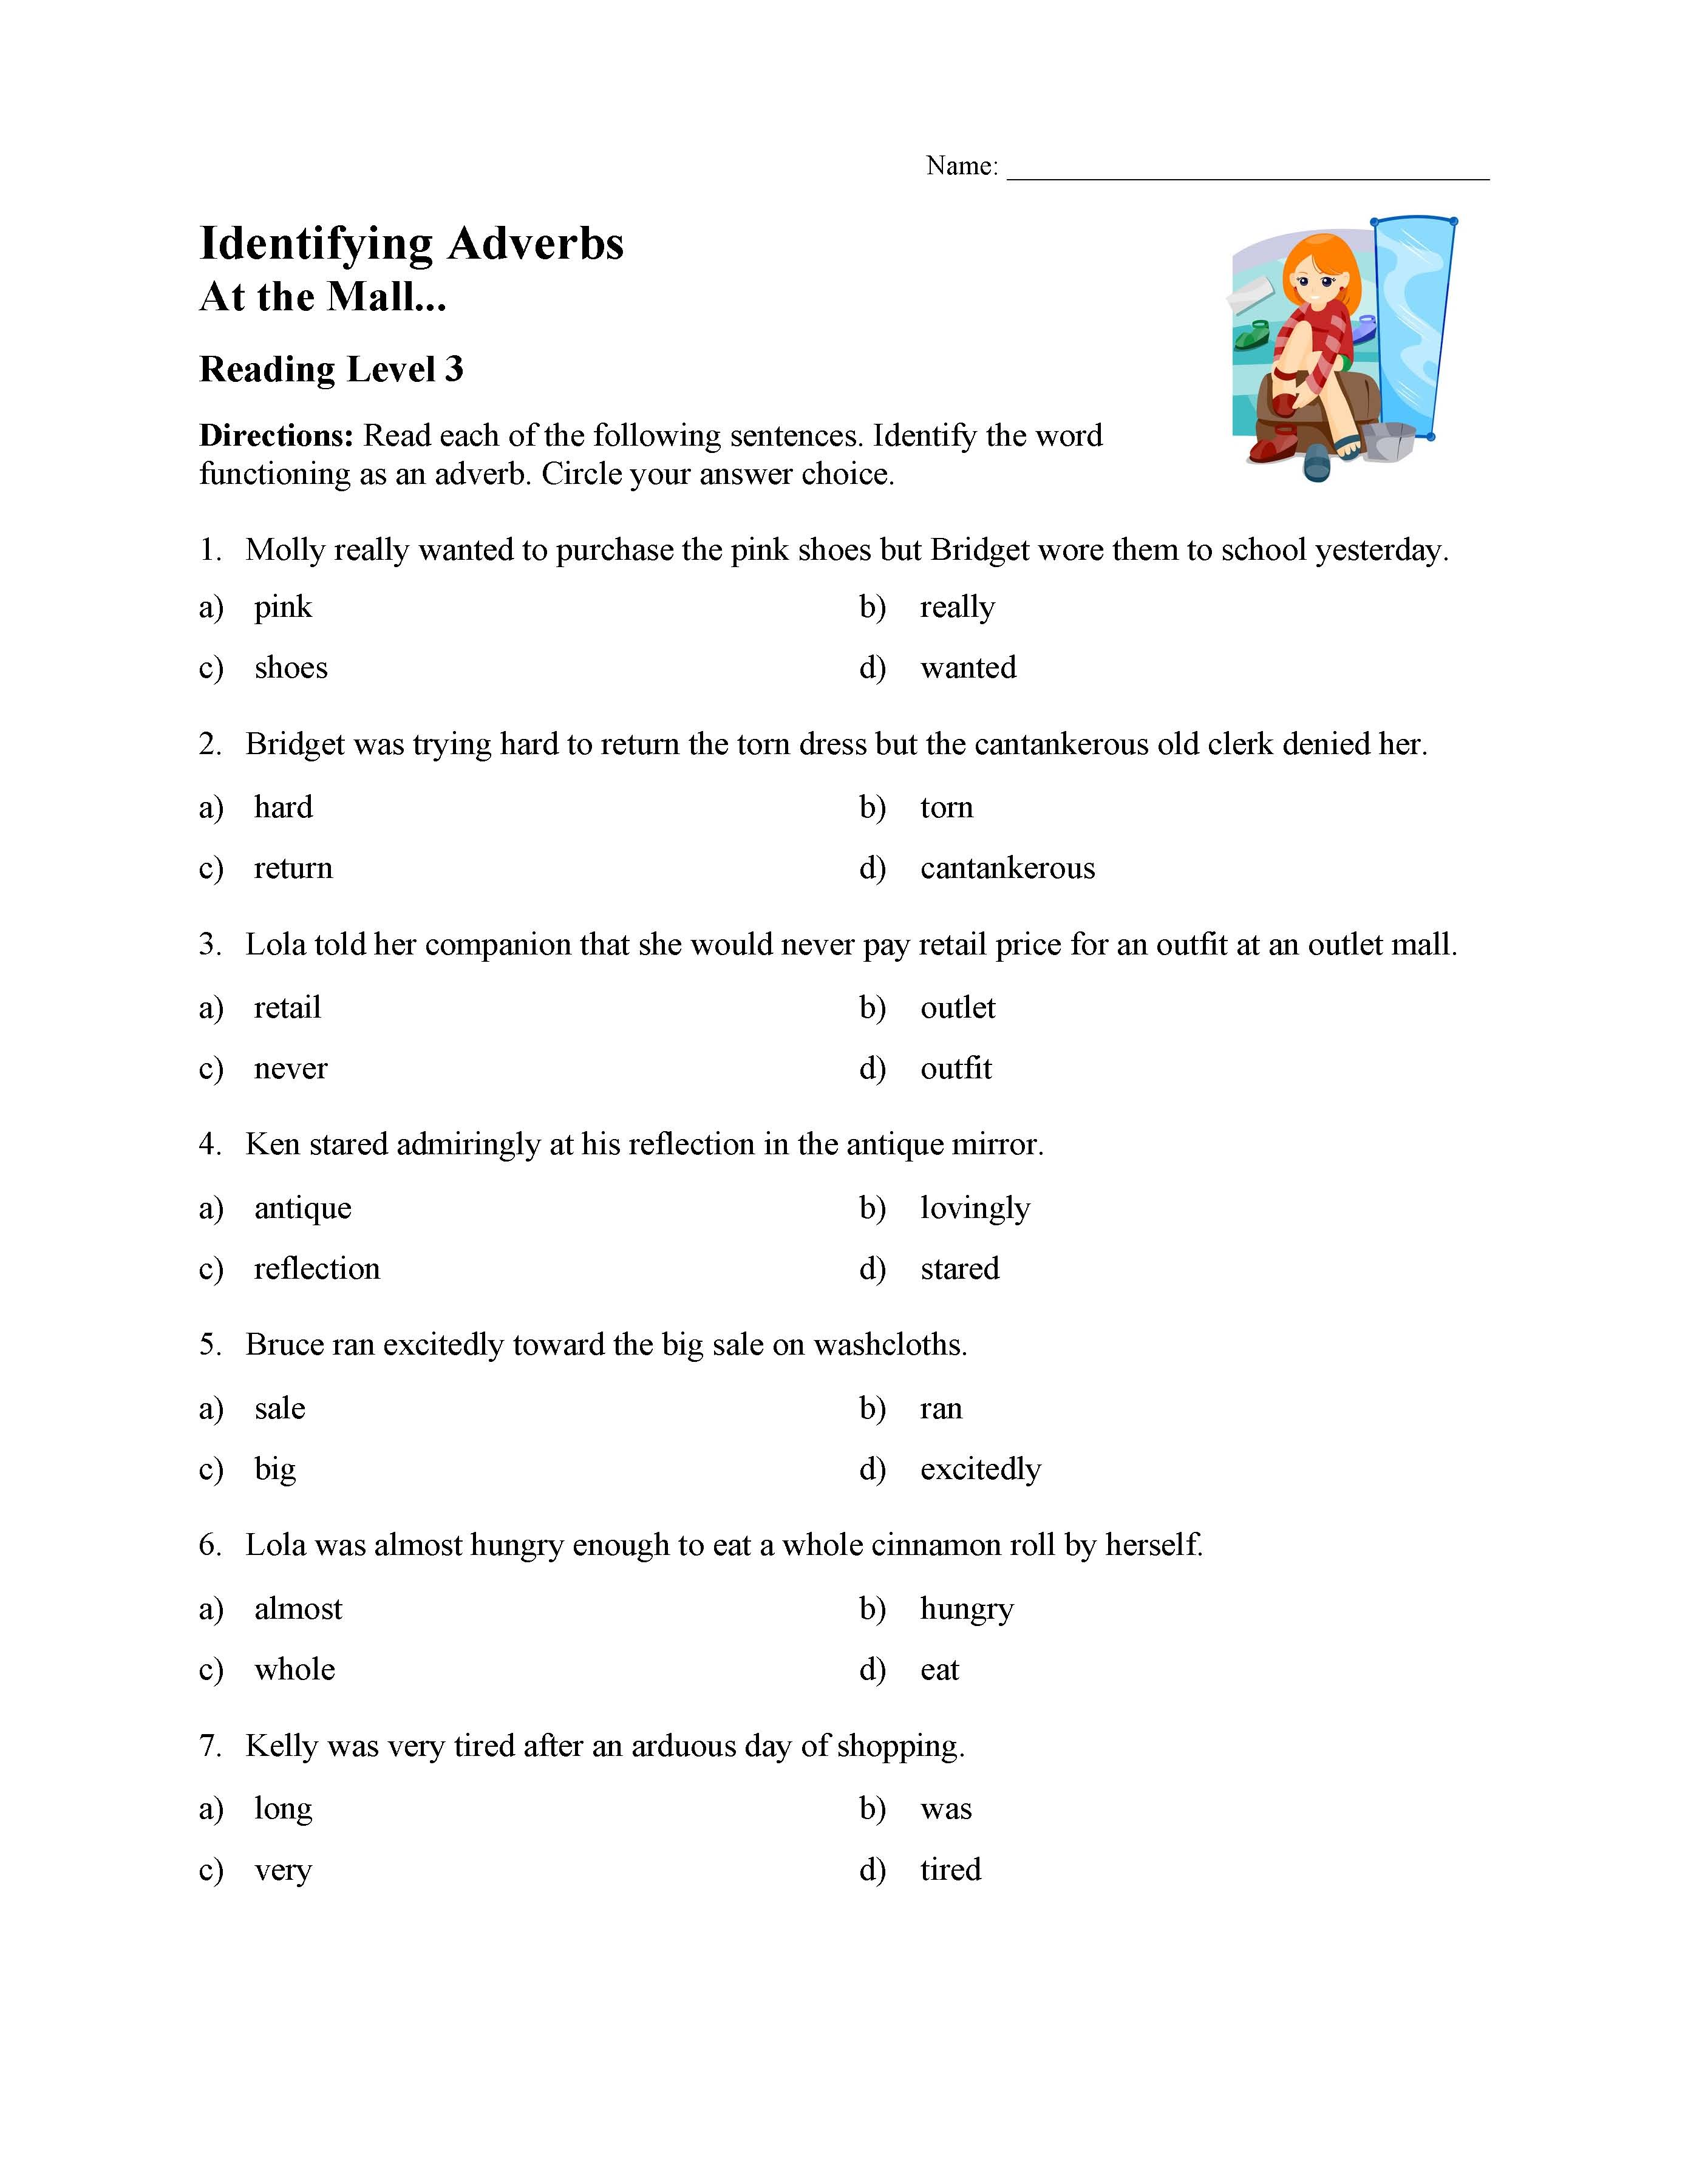 Identifying Adverbs Test